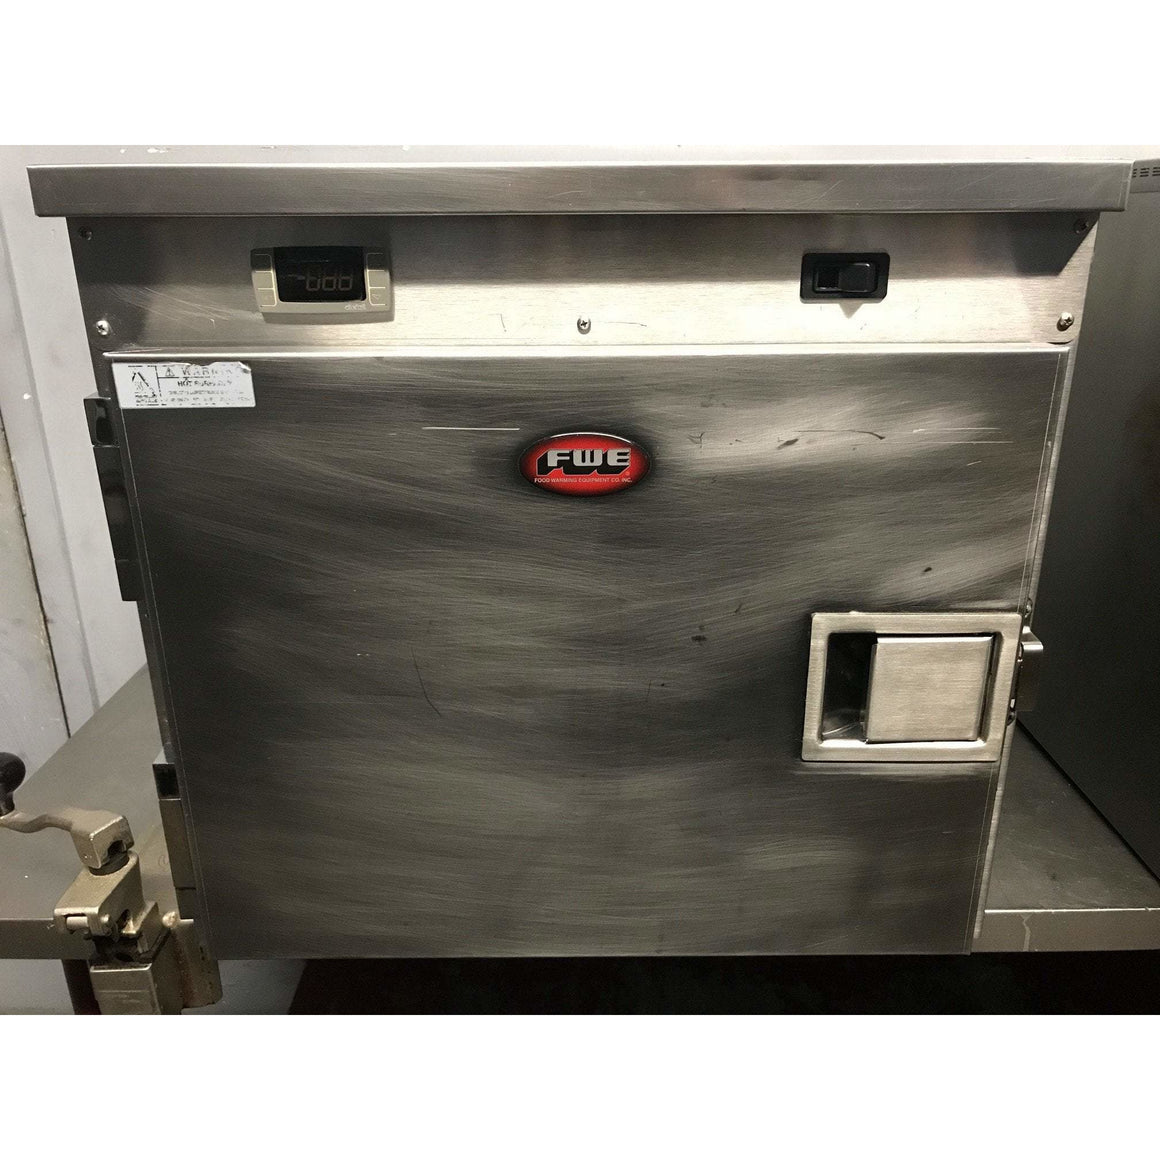 FWE Food Warmer (Used)